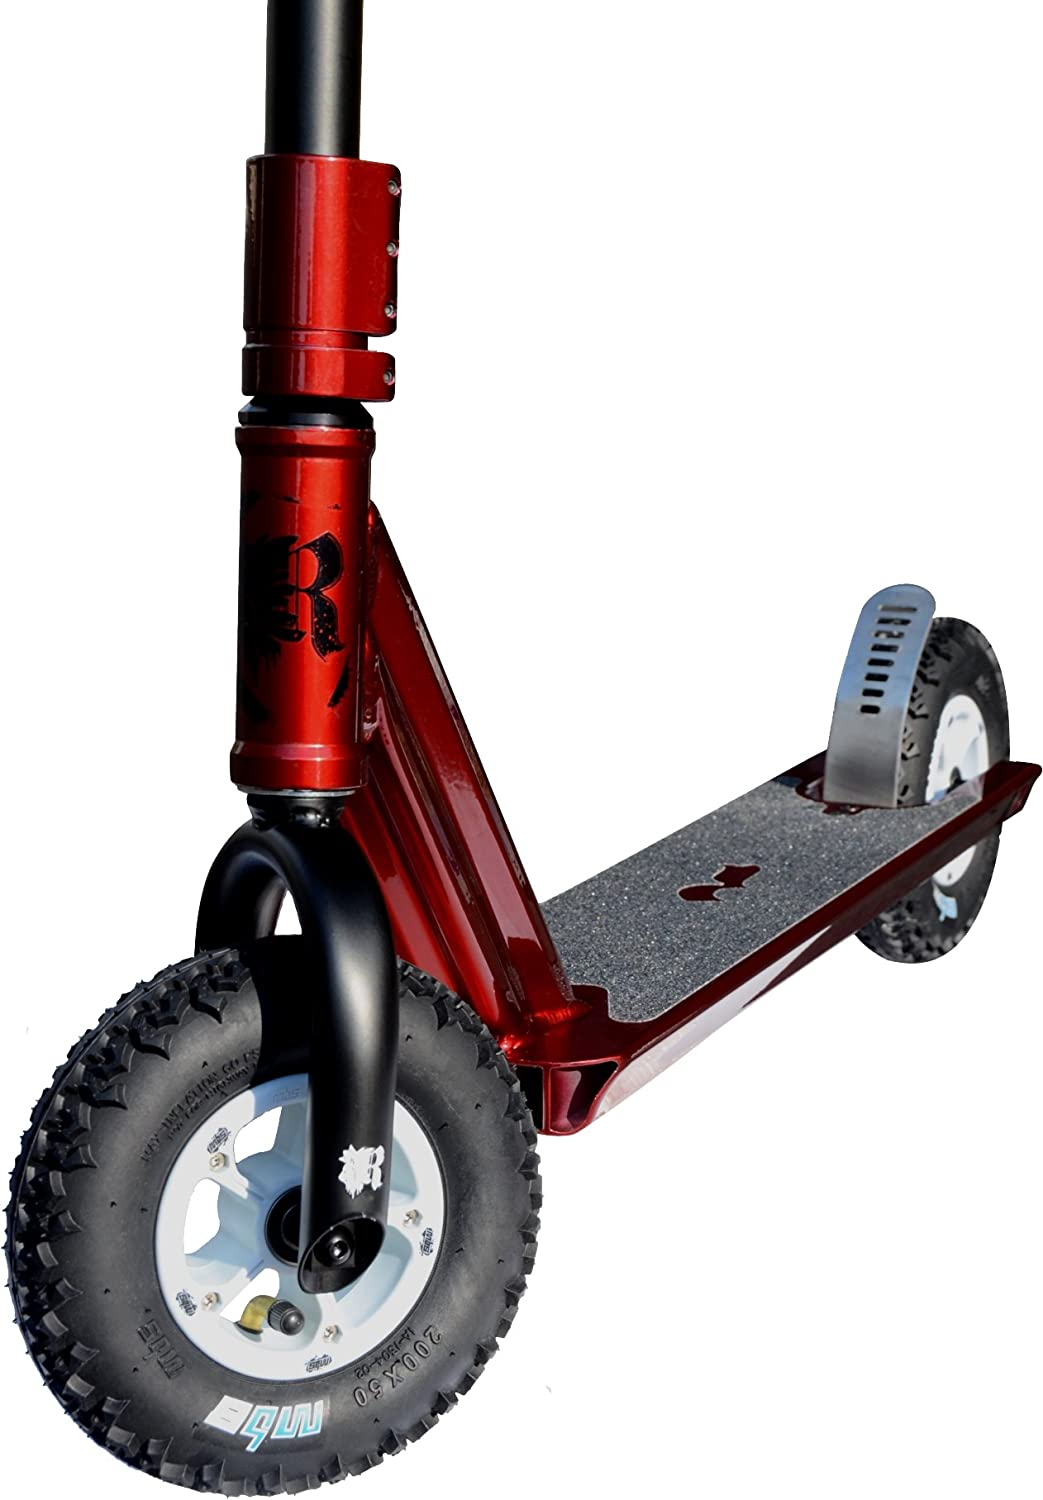 Amazon.com: Royal Scooters Royal Pro III Dirt Scooter ...